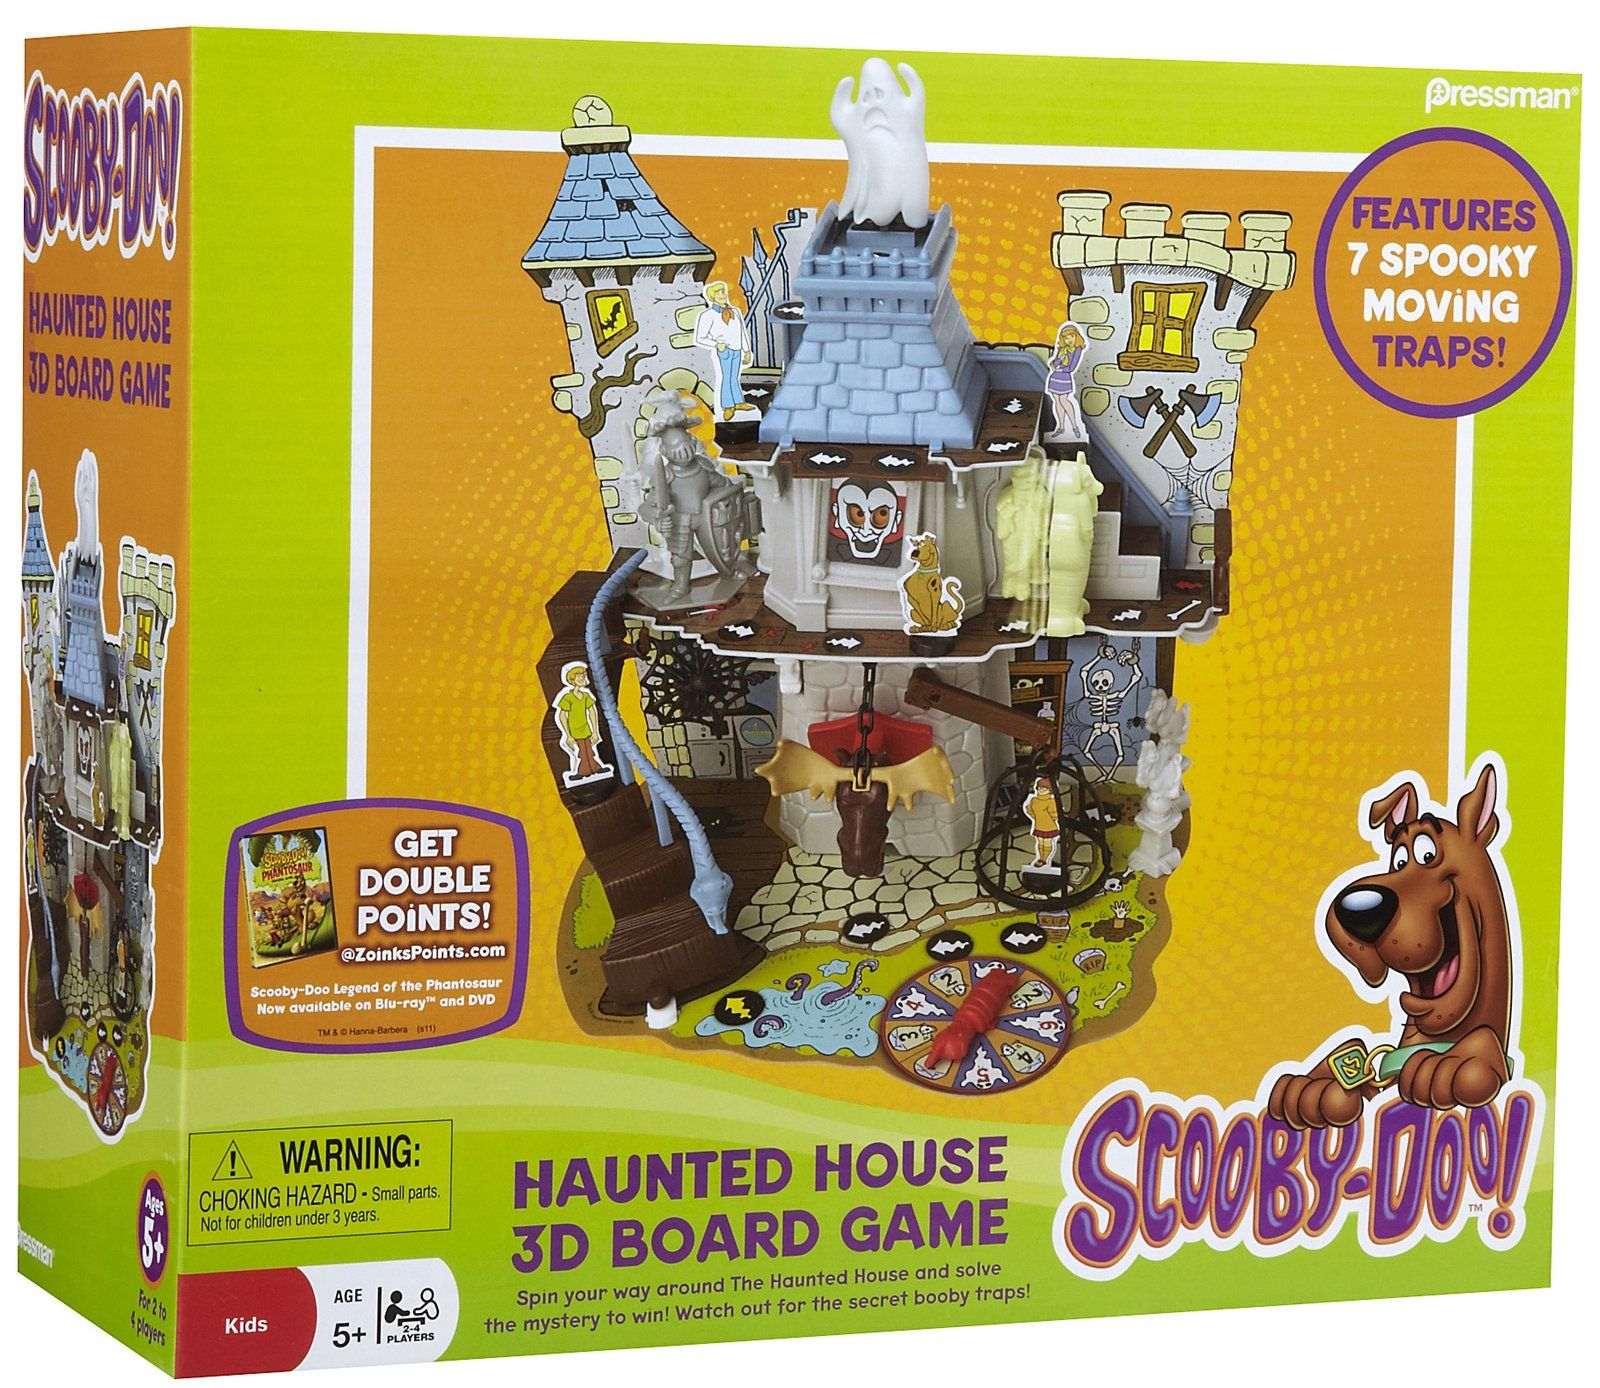 Pressman Toys ScoobyDoo! Haunted House Game